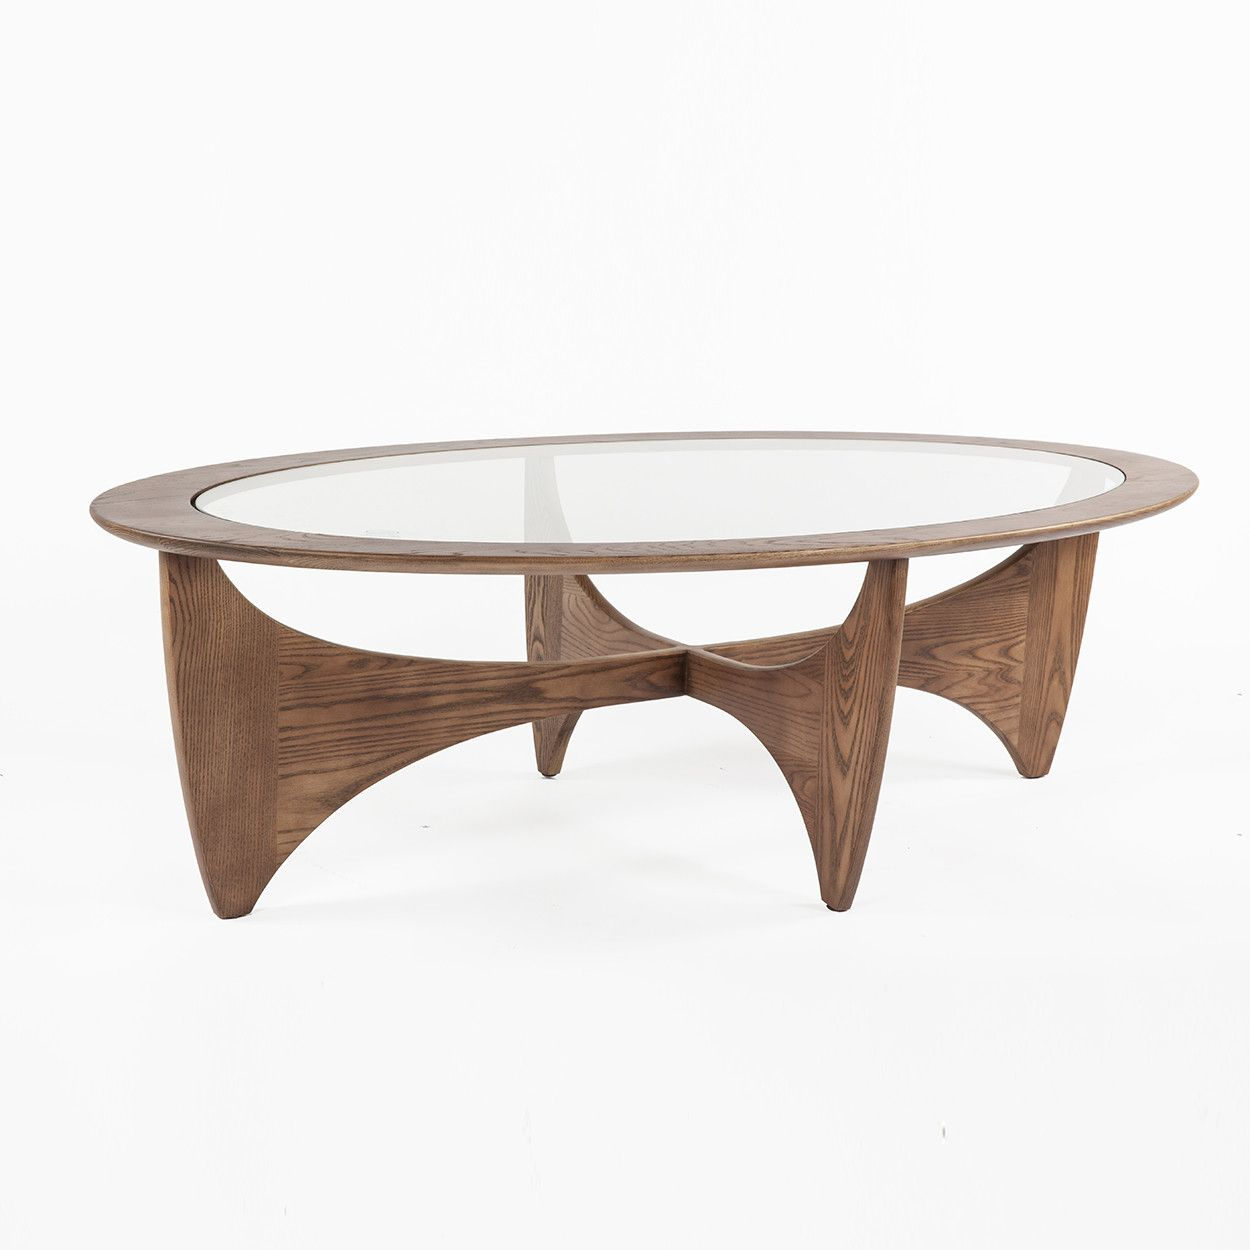 20 Mid Century Modern Round Coffee Table Cool Furniture Ideas Check More Mid Century Modern Coffee Table Coffee Table Round Mid Century Modern Coffee Table [ 1250 x 1250 Pixel ]